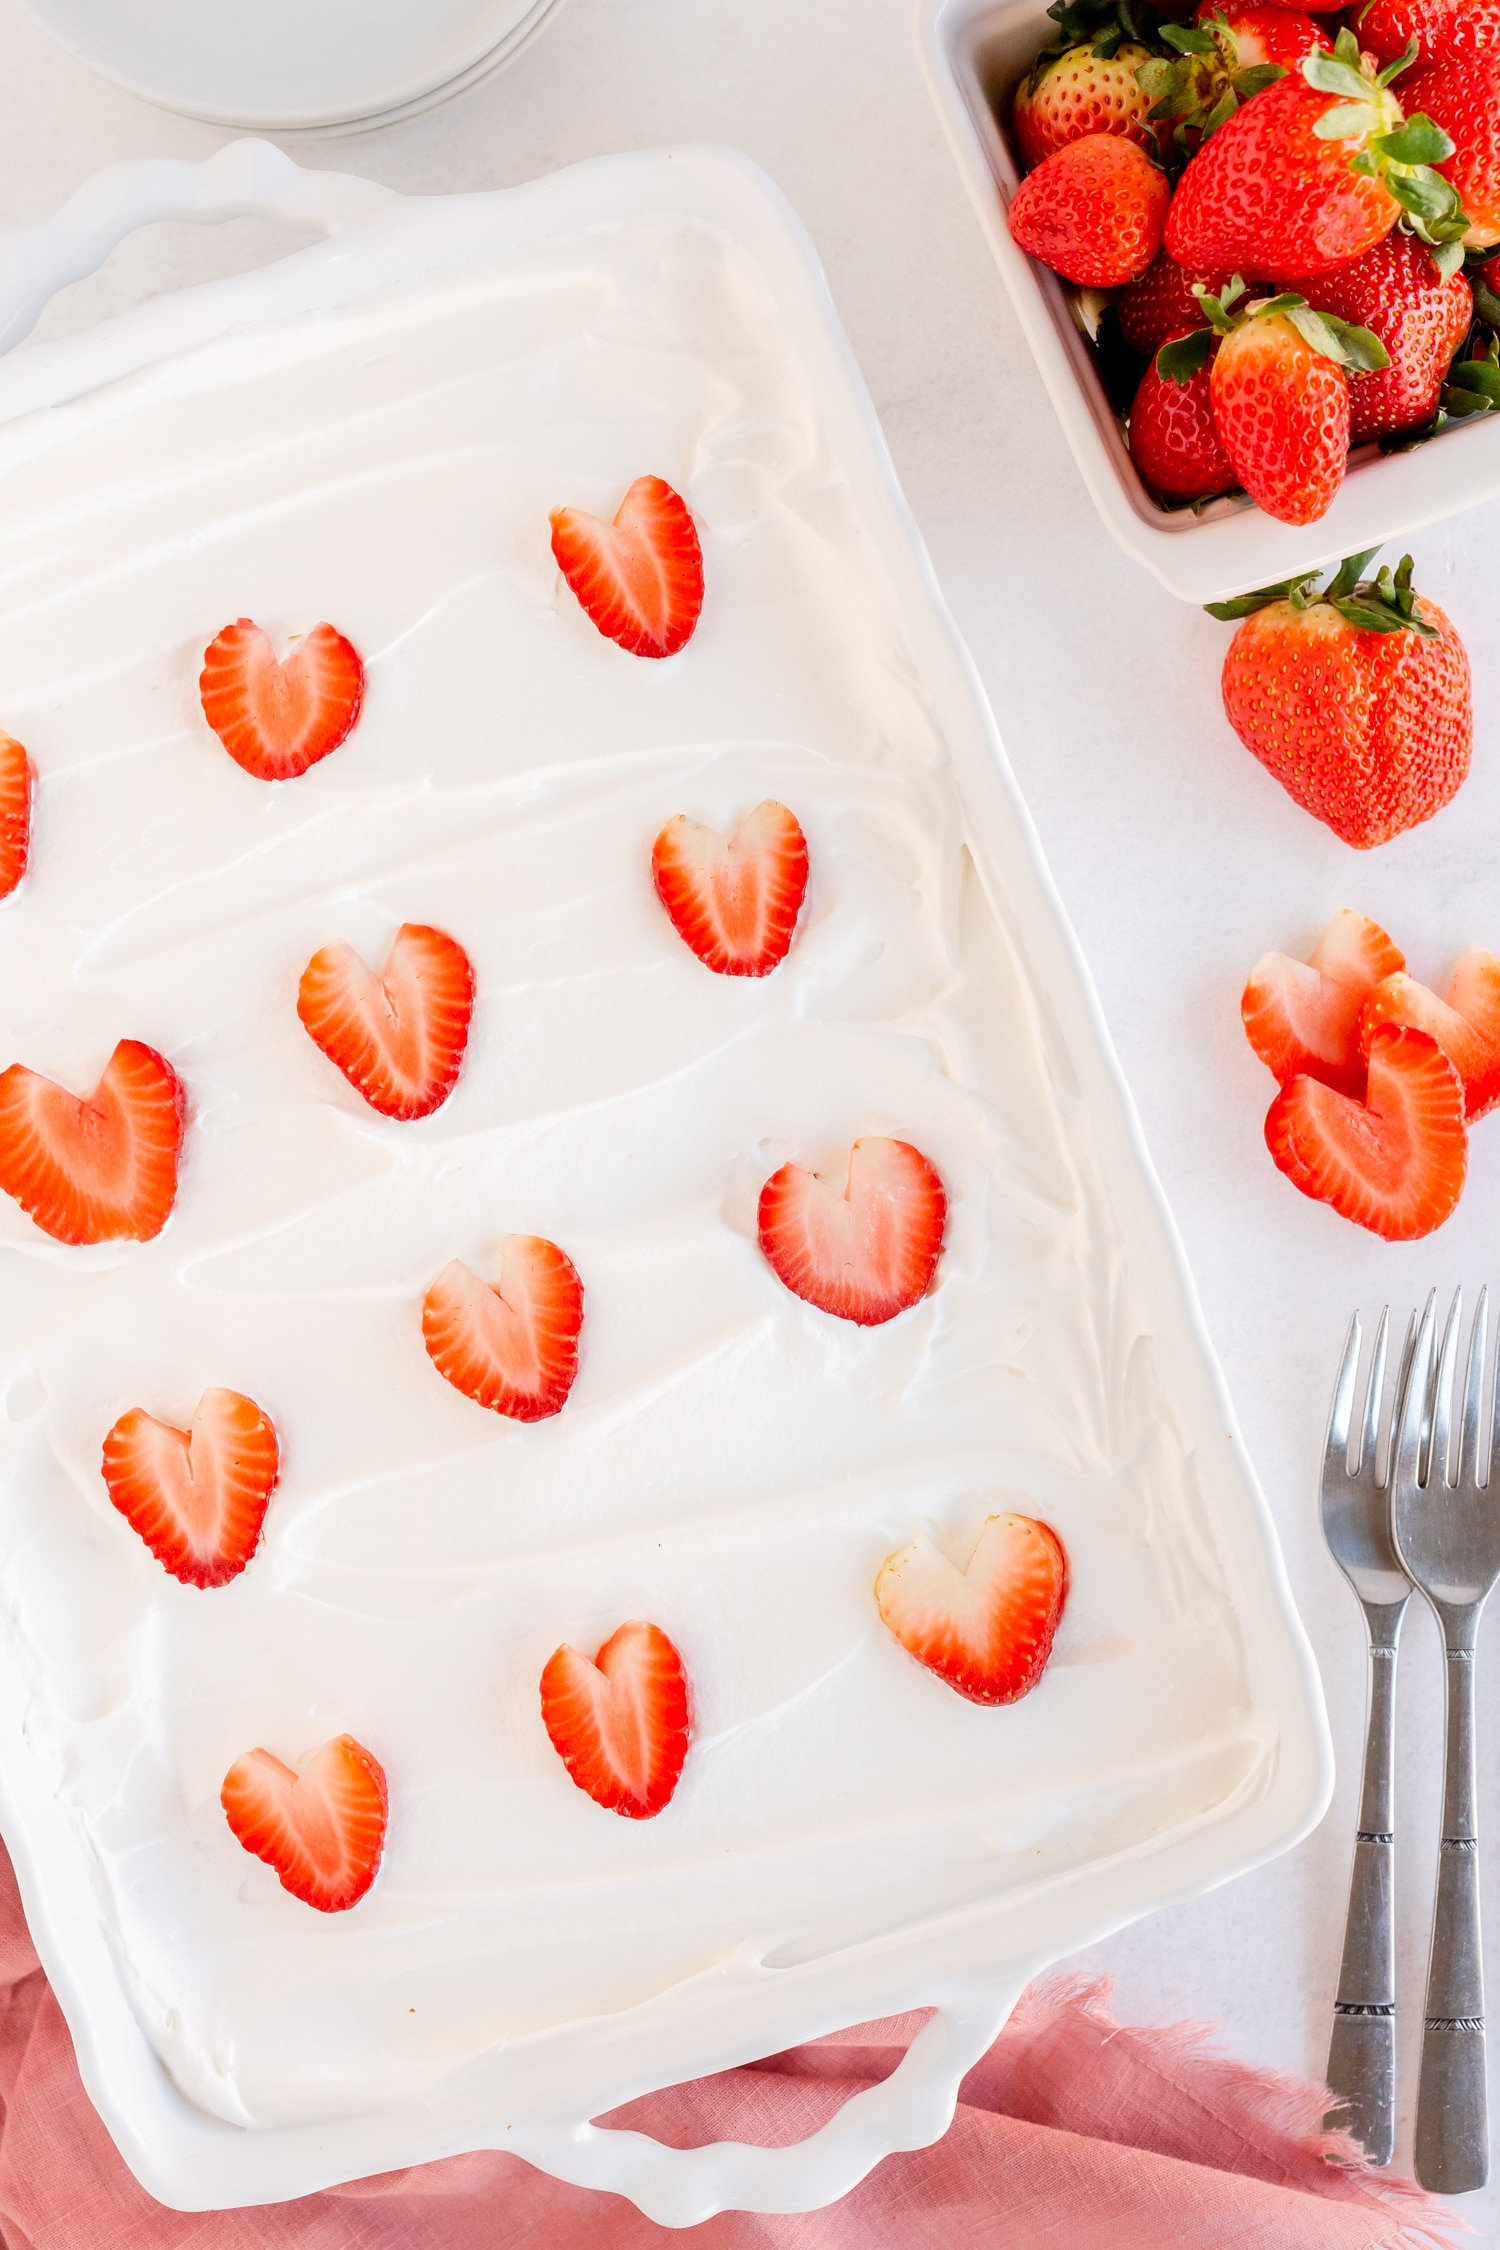 cake mix with sliced strawberries on top